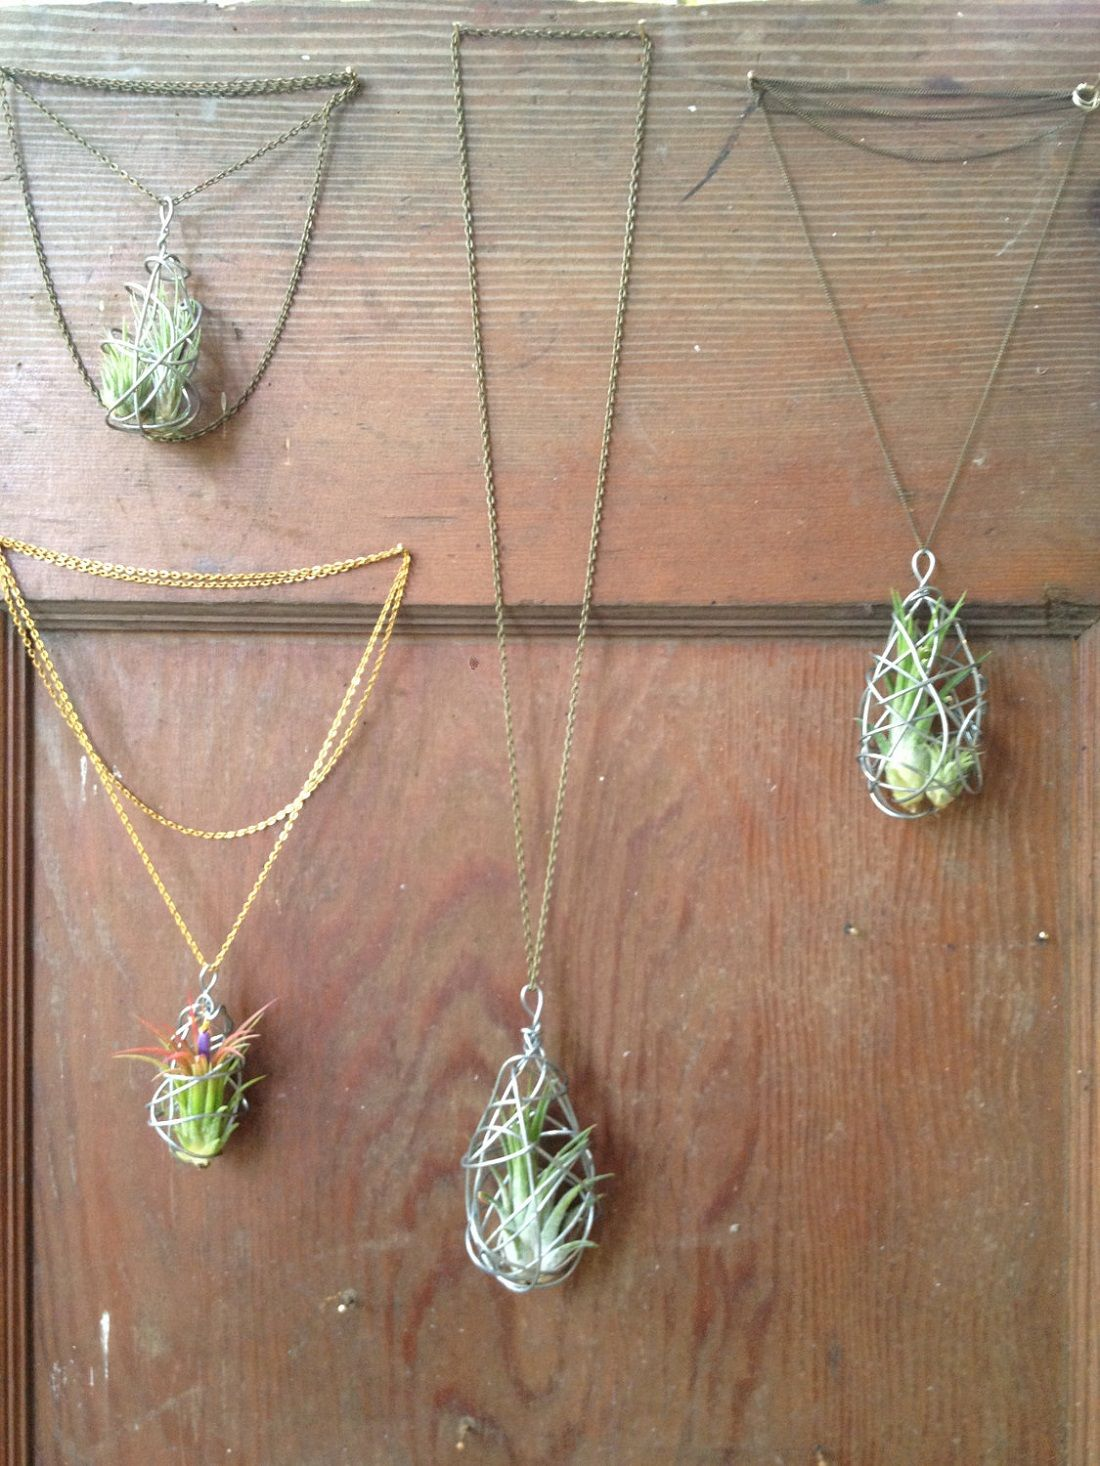 Plant Grow Thrive Necklace